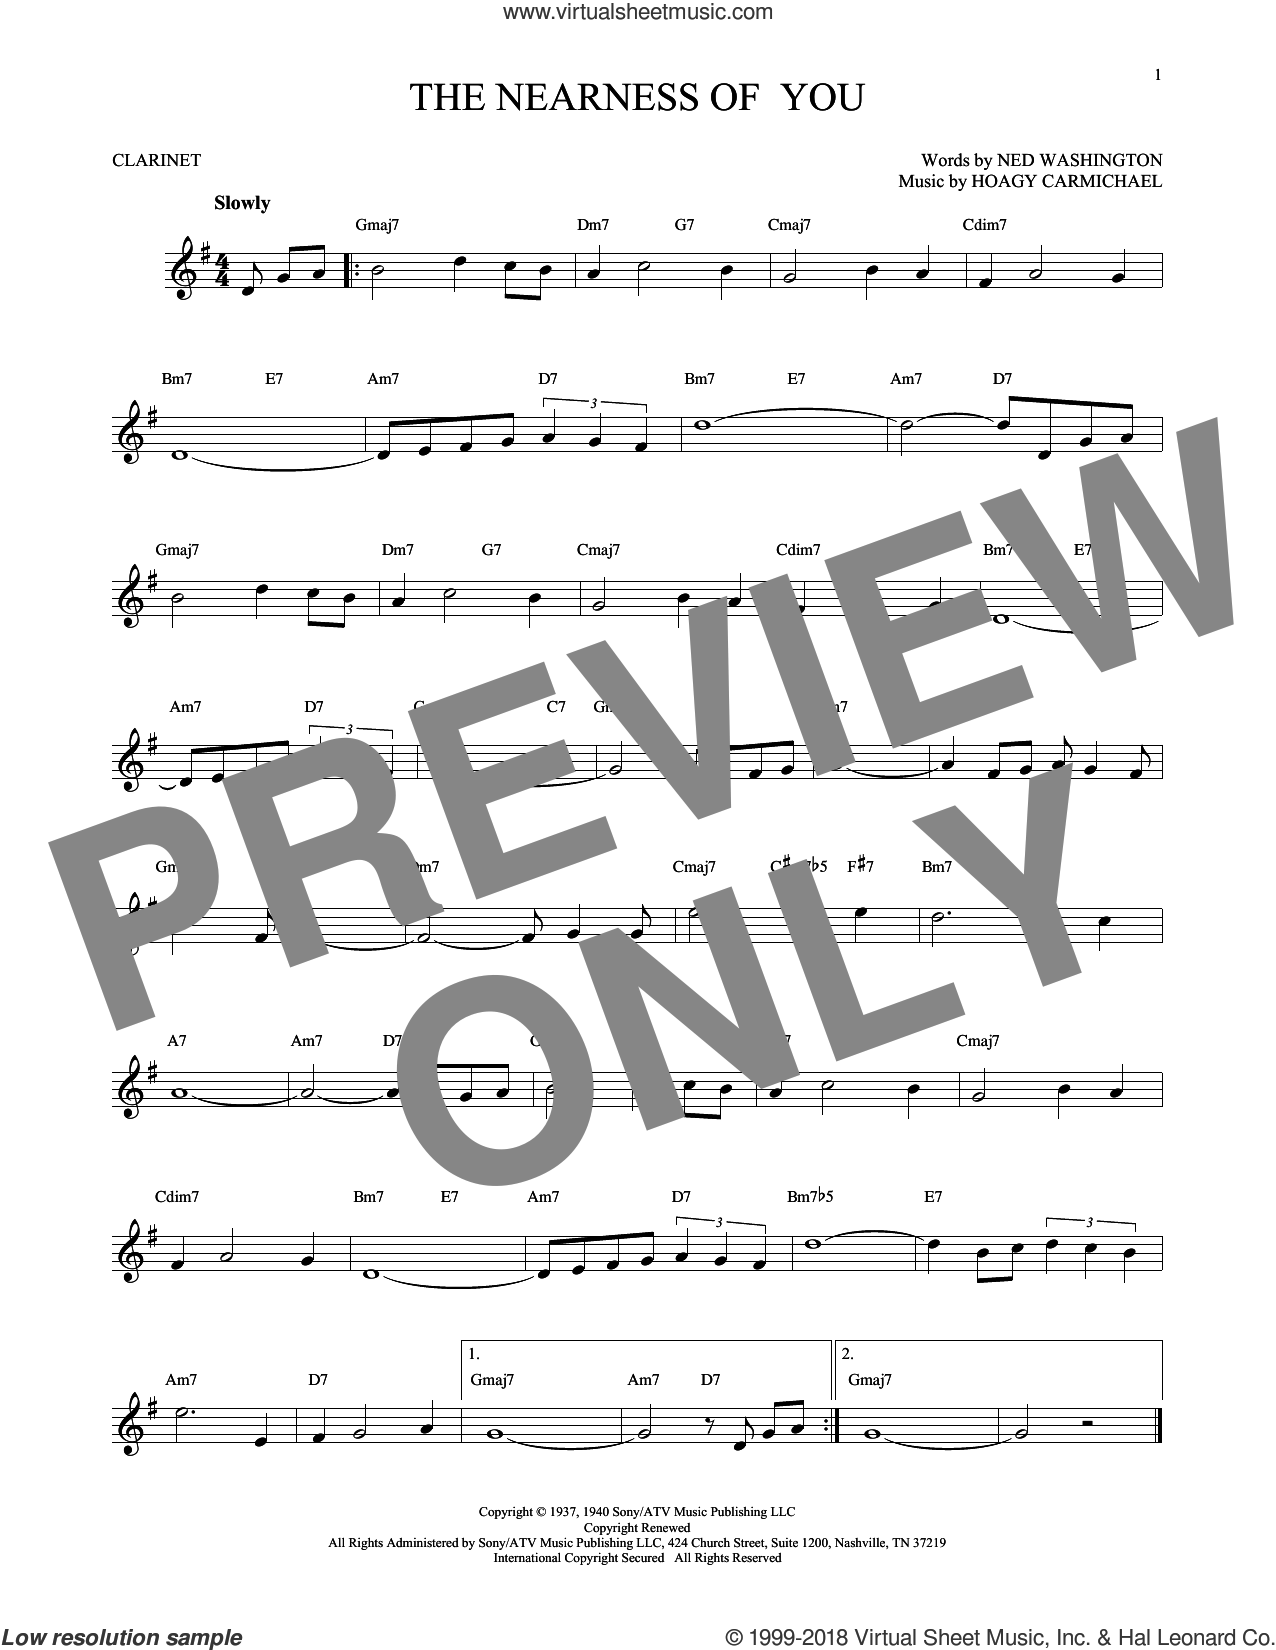 The Nearness Of You sheet music for clarinet solo by Hoagy Carmichael, George Shearing and Ned Washington, intermediate skill level